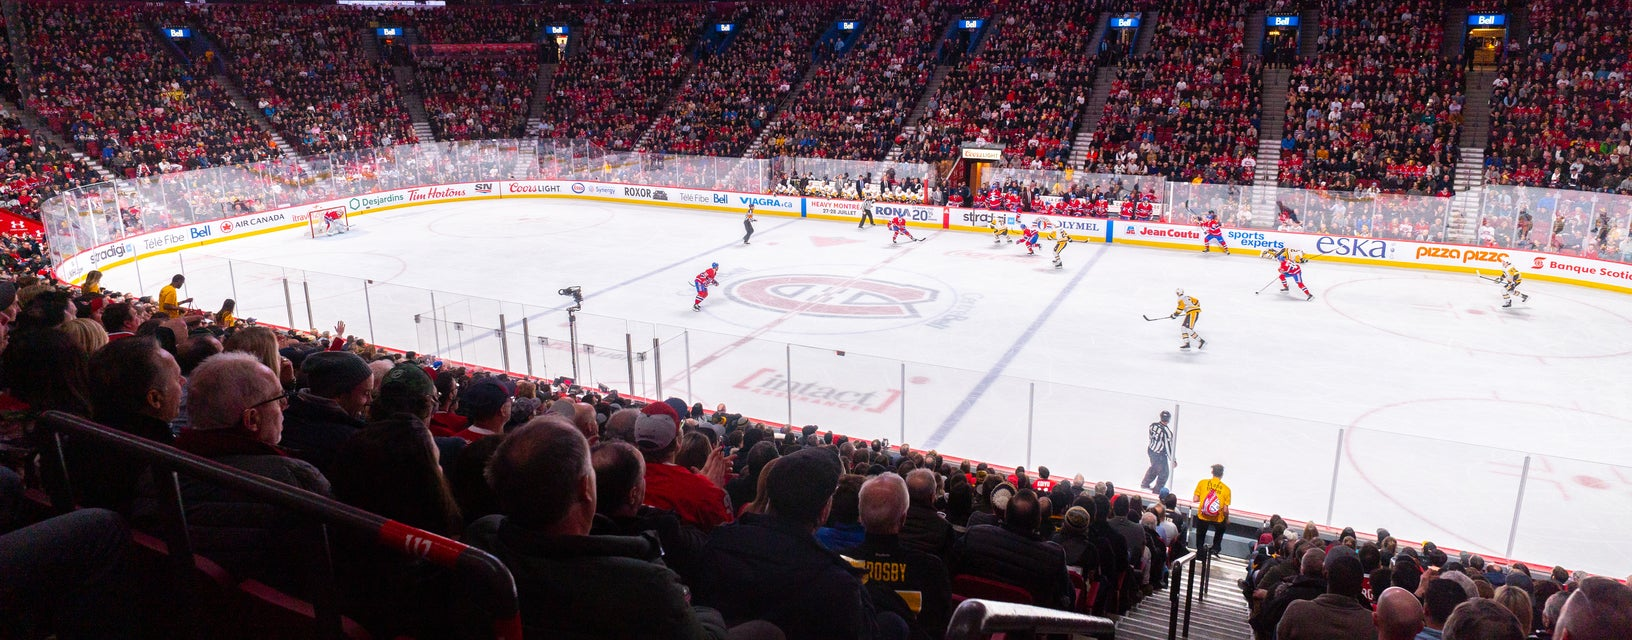 Seat view from Red Center